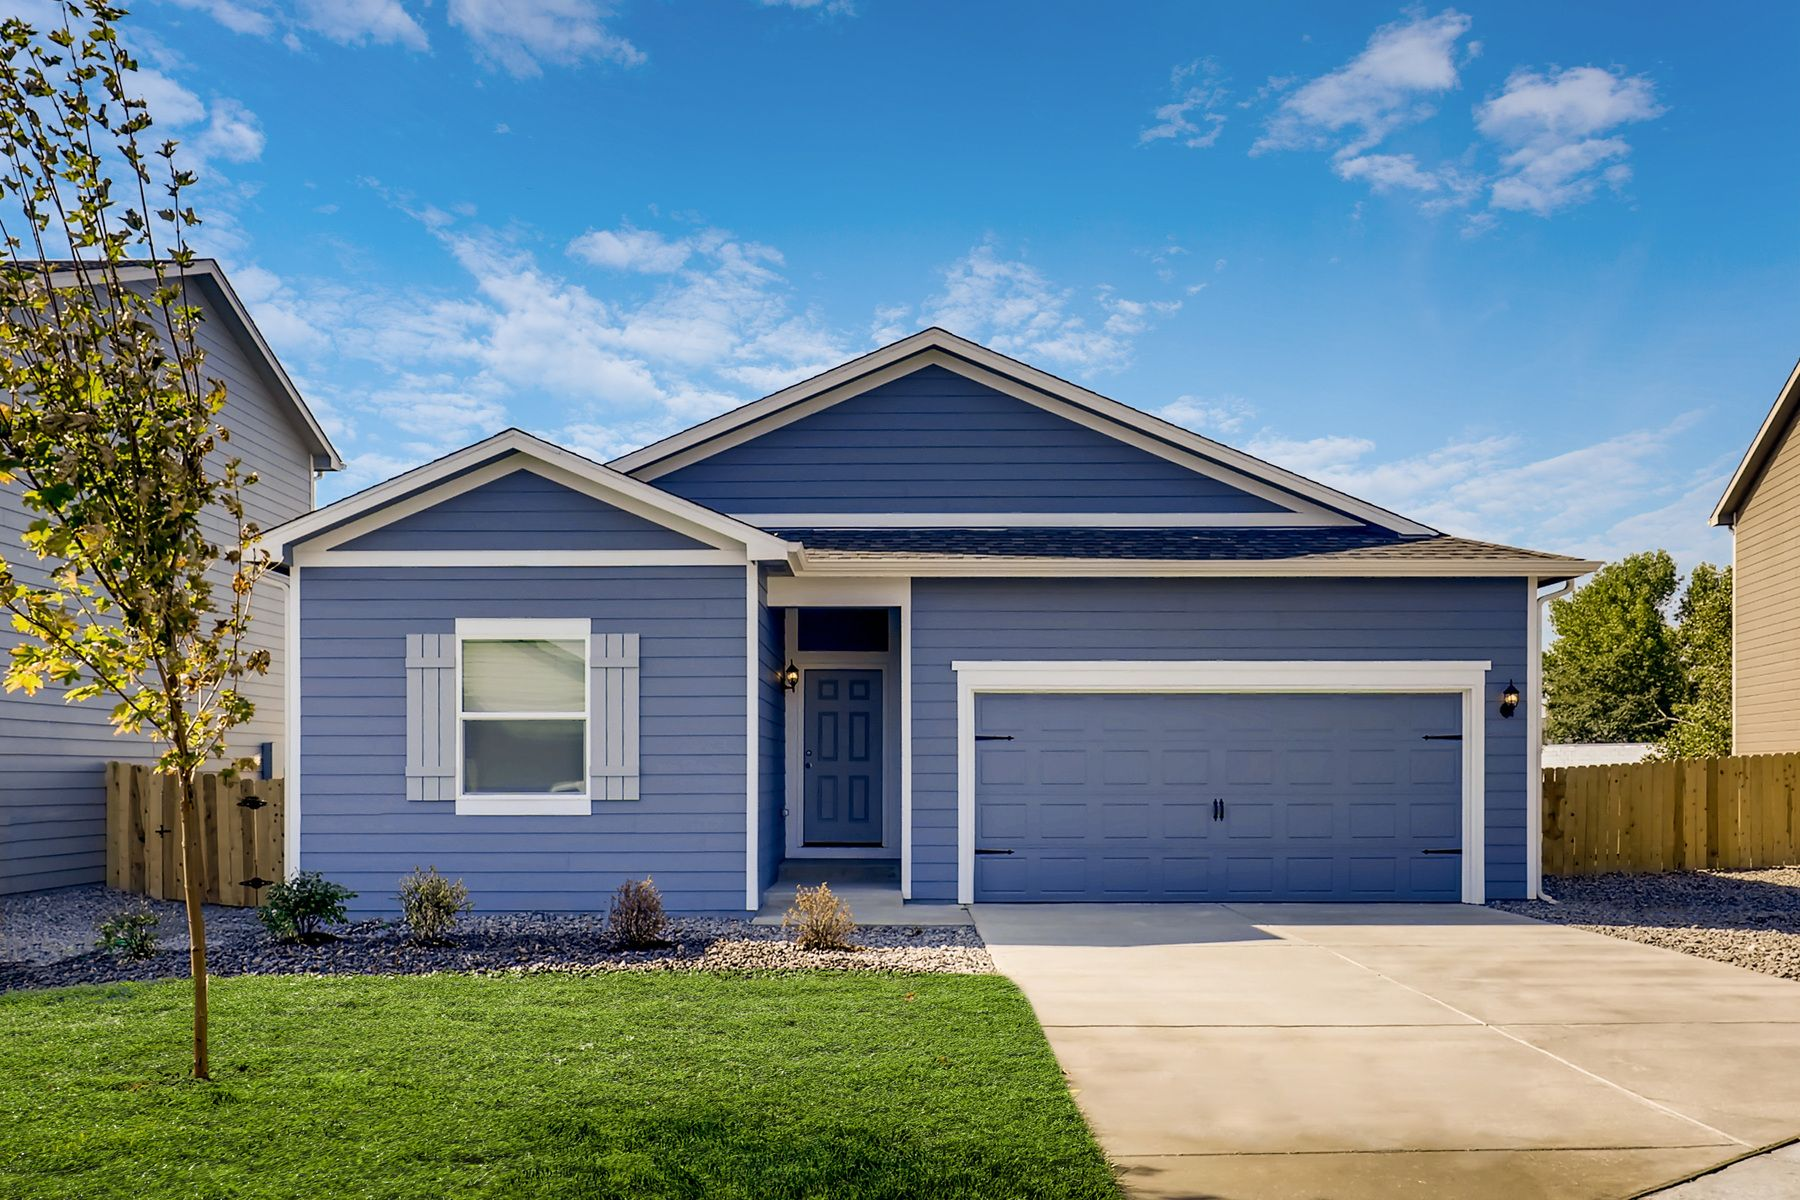 Stunning curb appeal:The Chatfield by LGI Homes